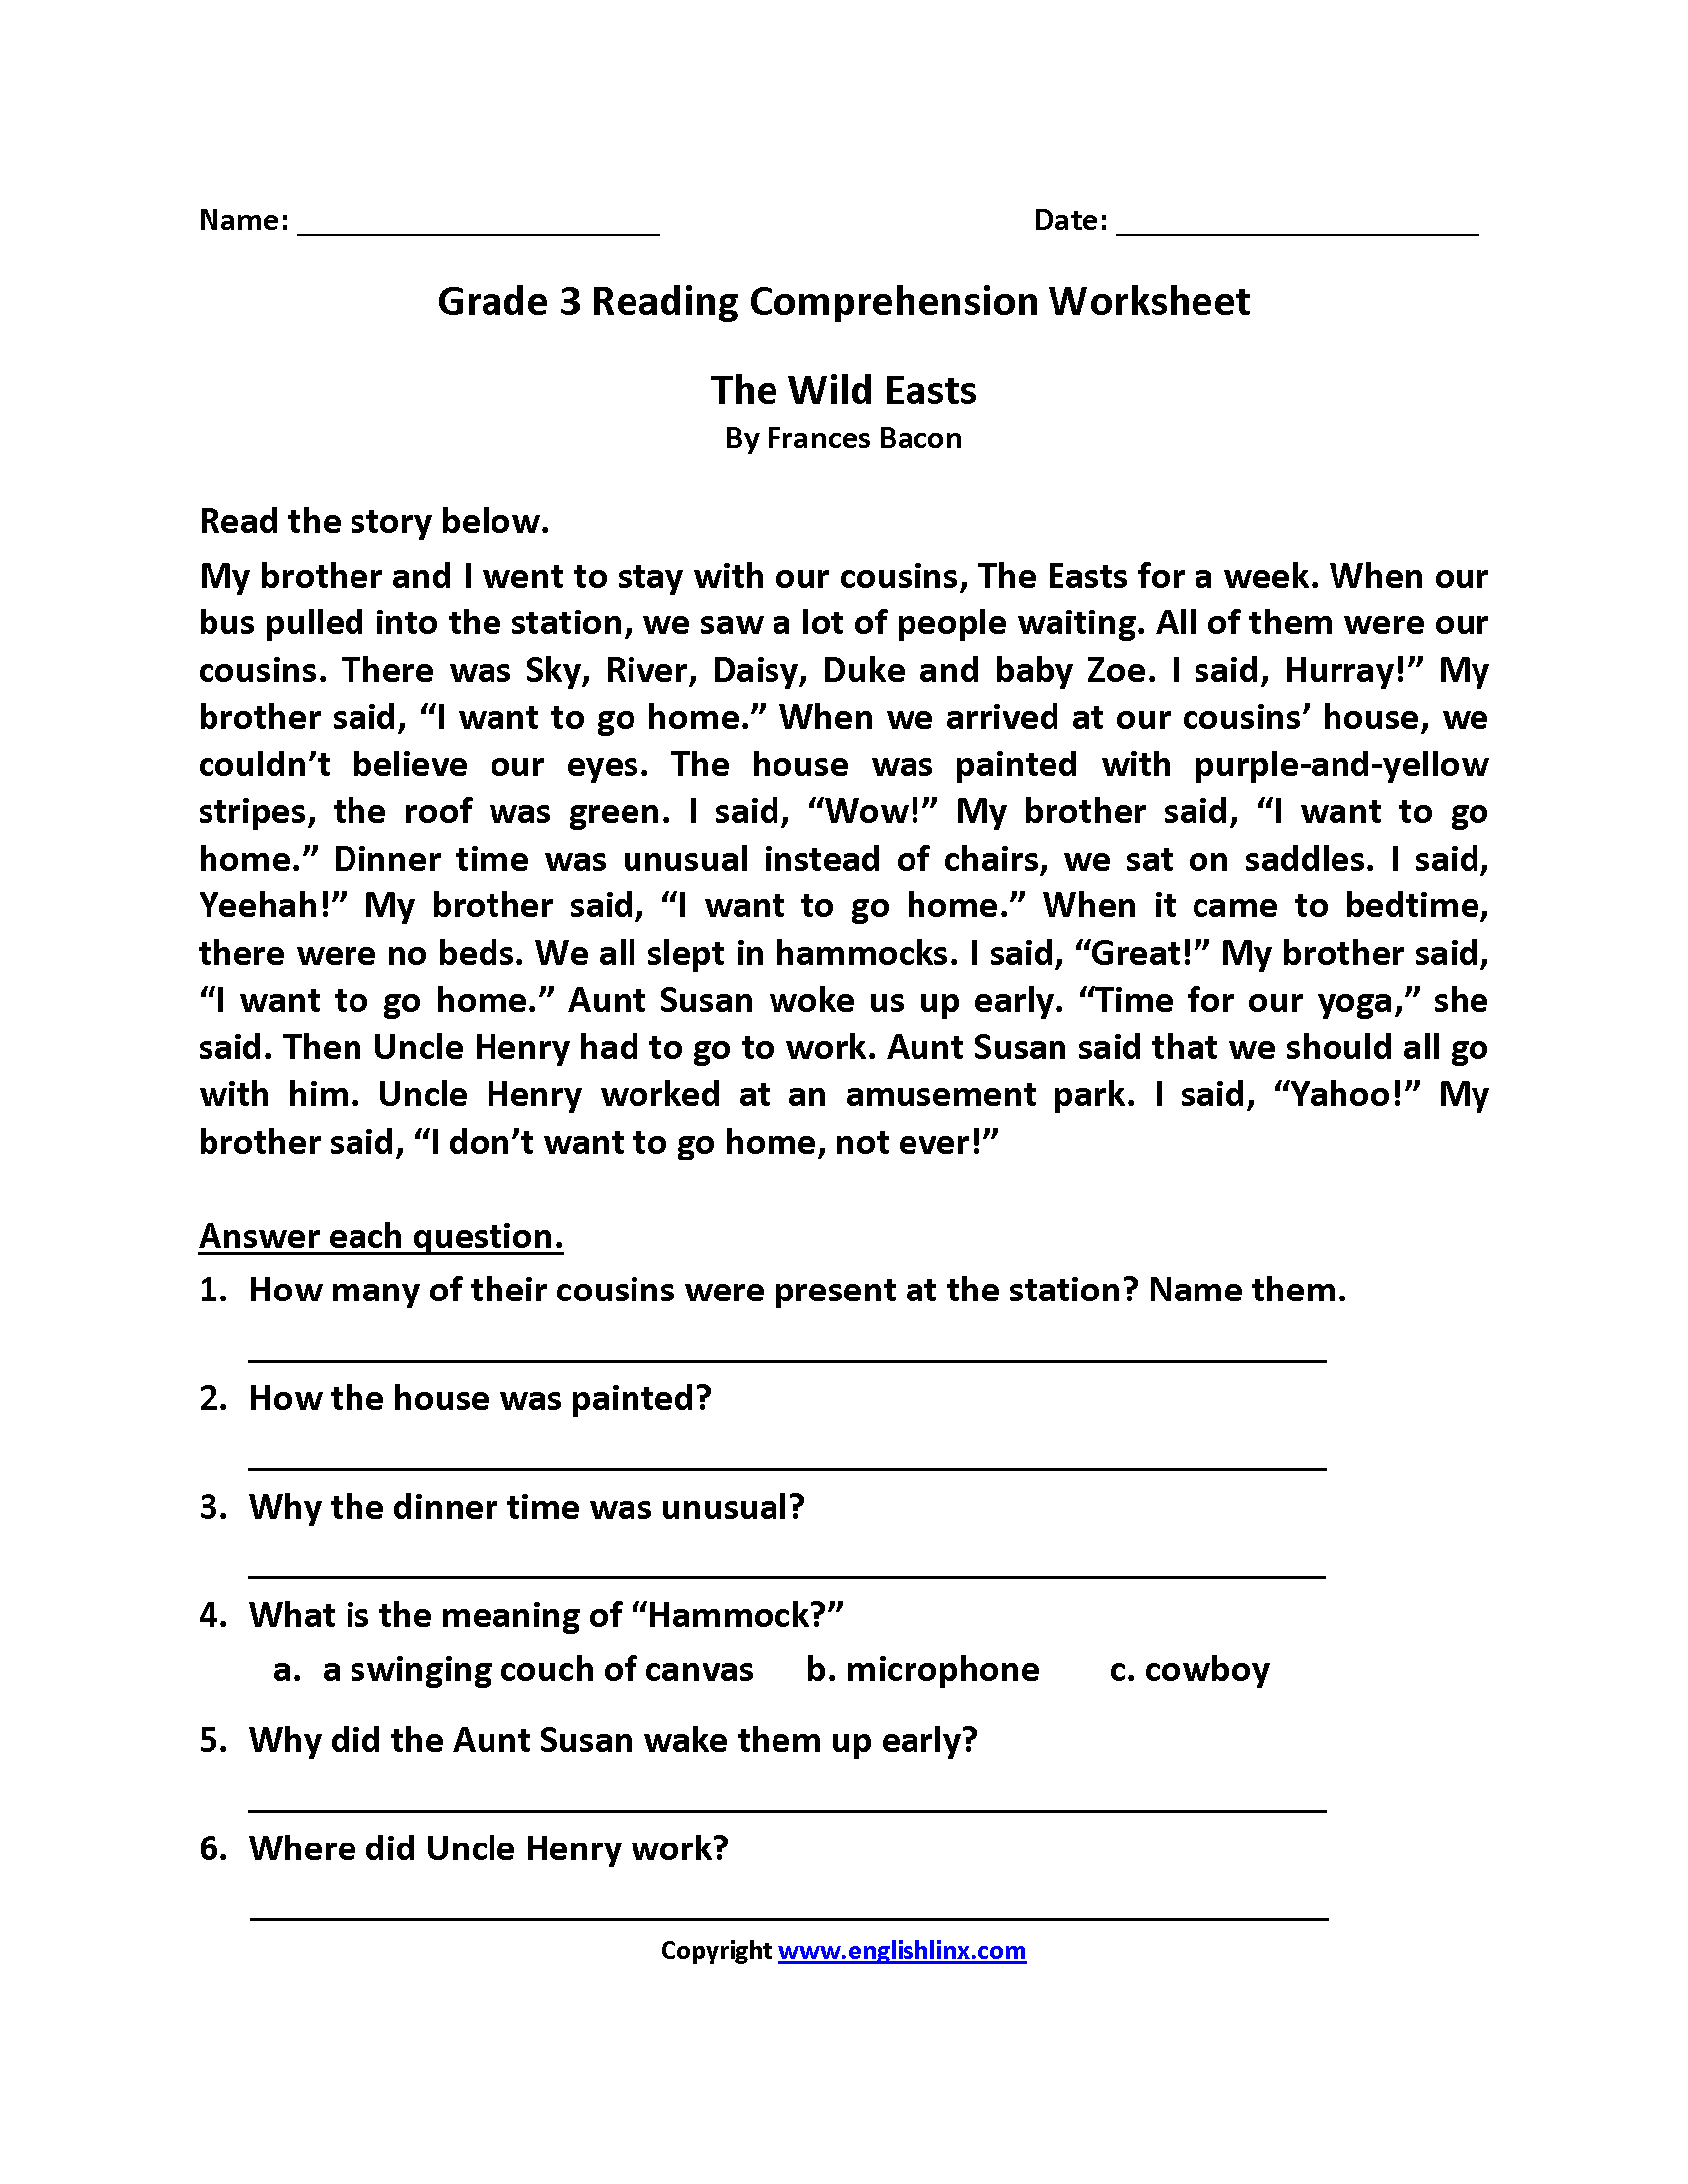 Wild Easts Third Grade Reading Worksheets Durre Maknoon Reading Third Grade Reading Worksheets Reading Worksheets Reading Comprehension Worksheets